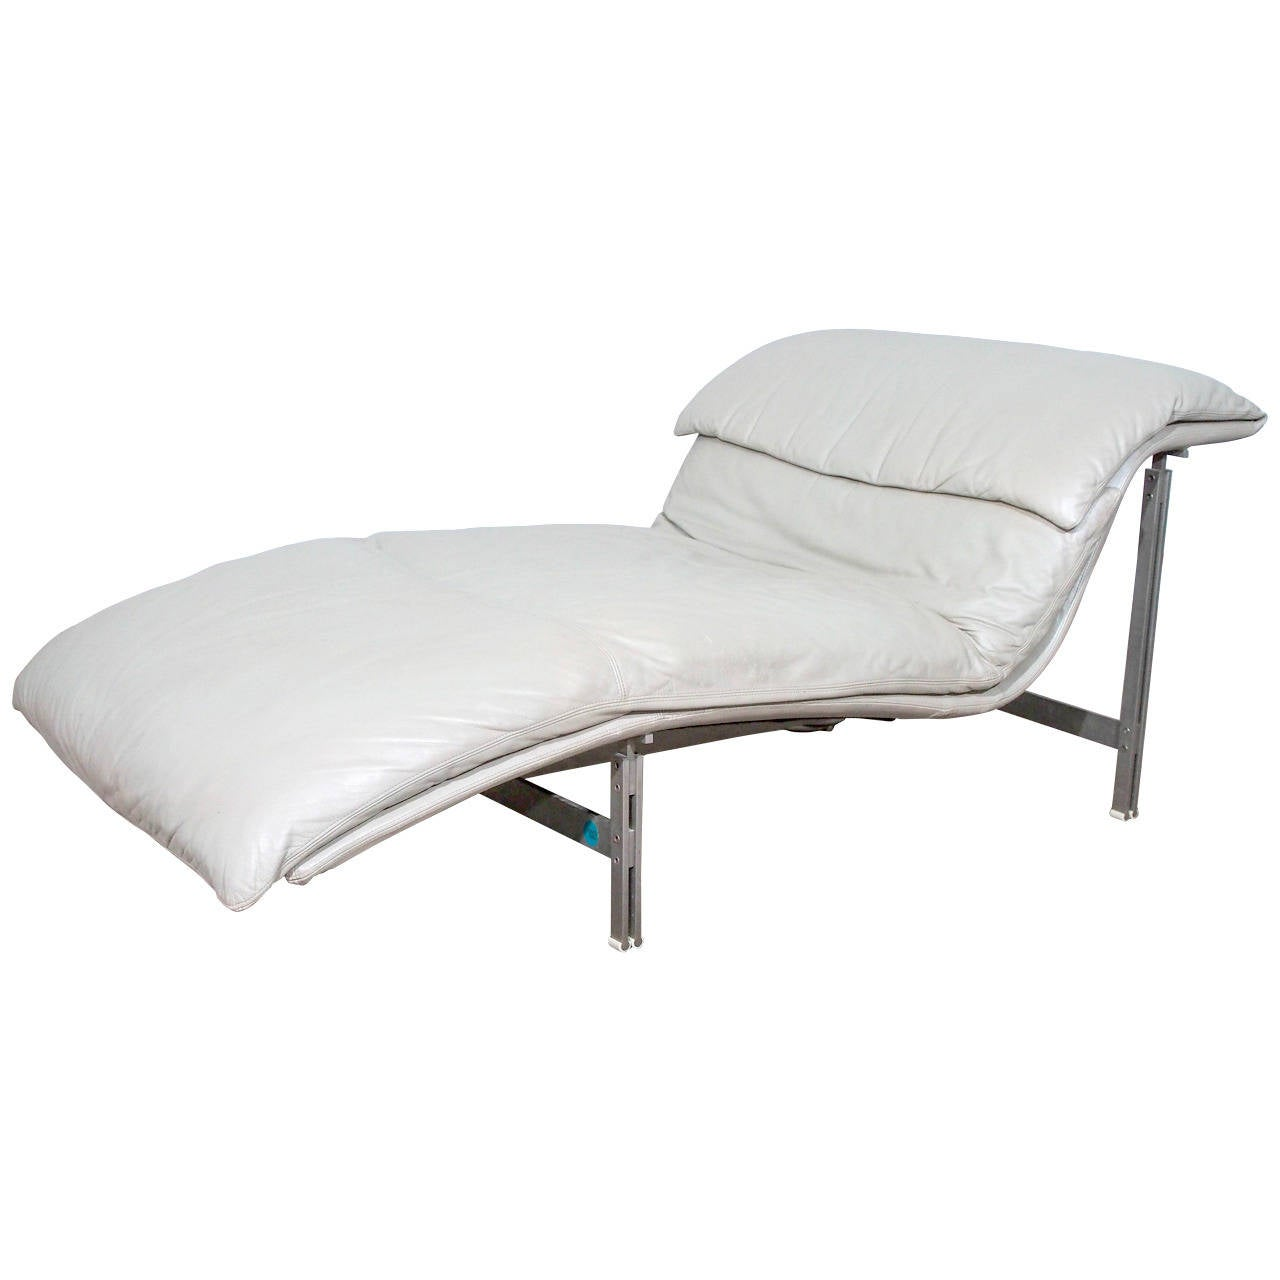 Leather wave chaise longue chair by giovanni offredi for for Chaise longue leather